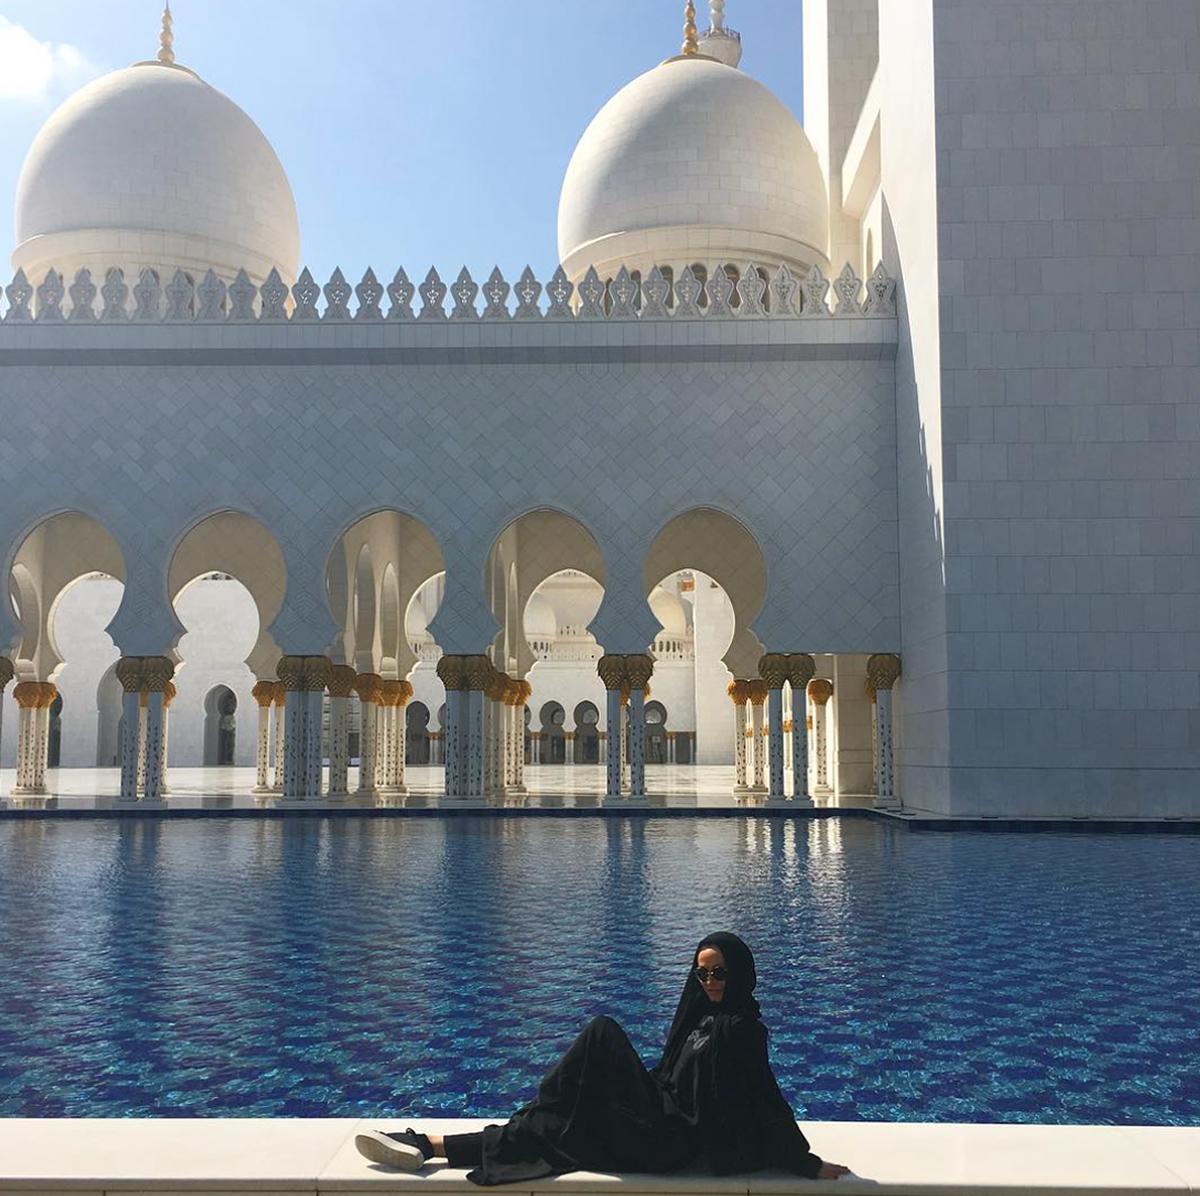 Sheikh Zayed Mosque 20170207 Karina Smirnoff Instagram Map